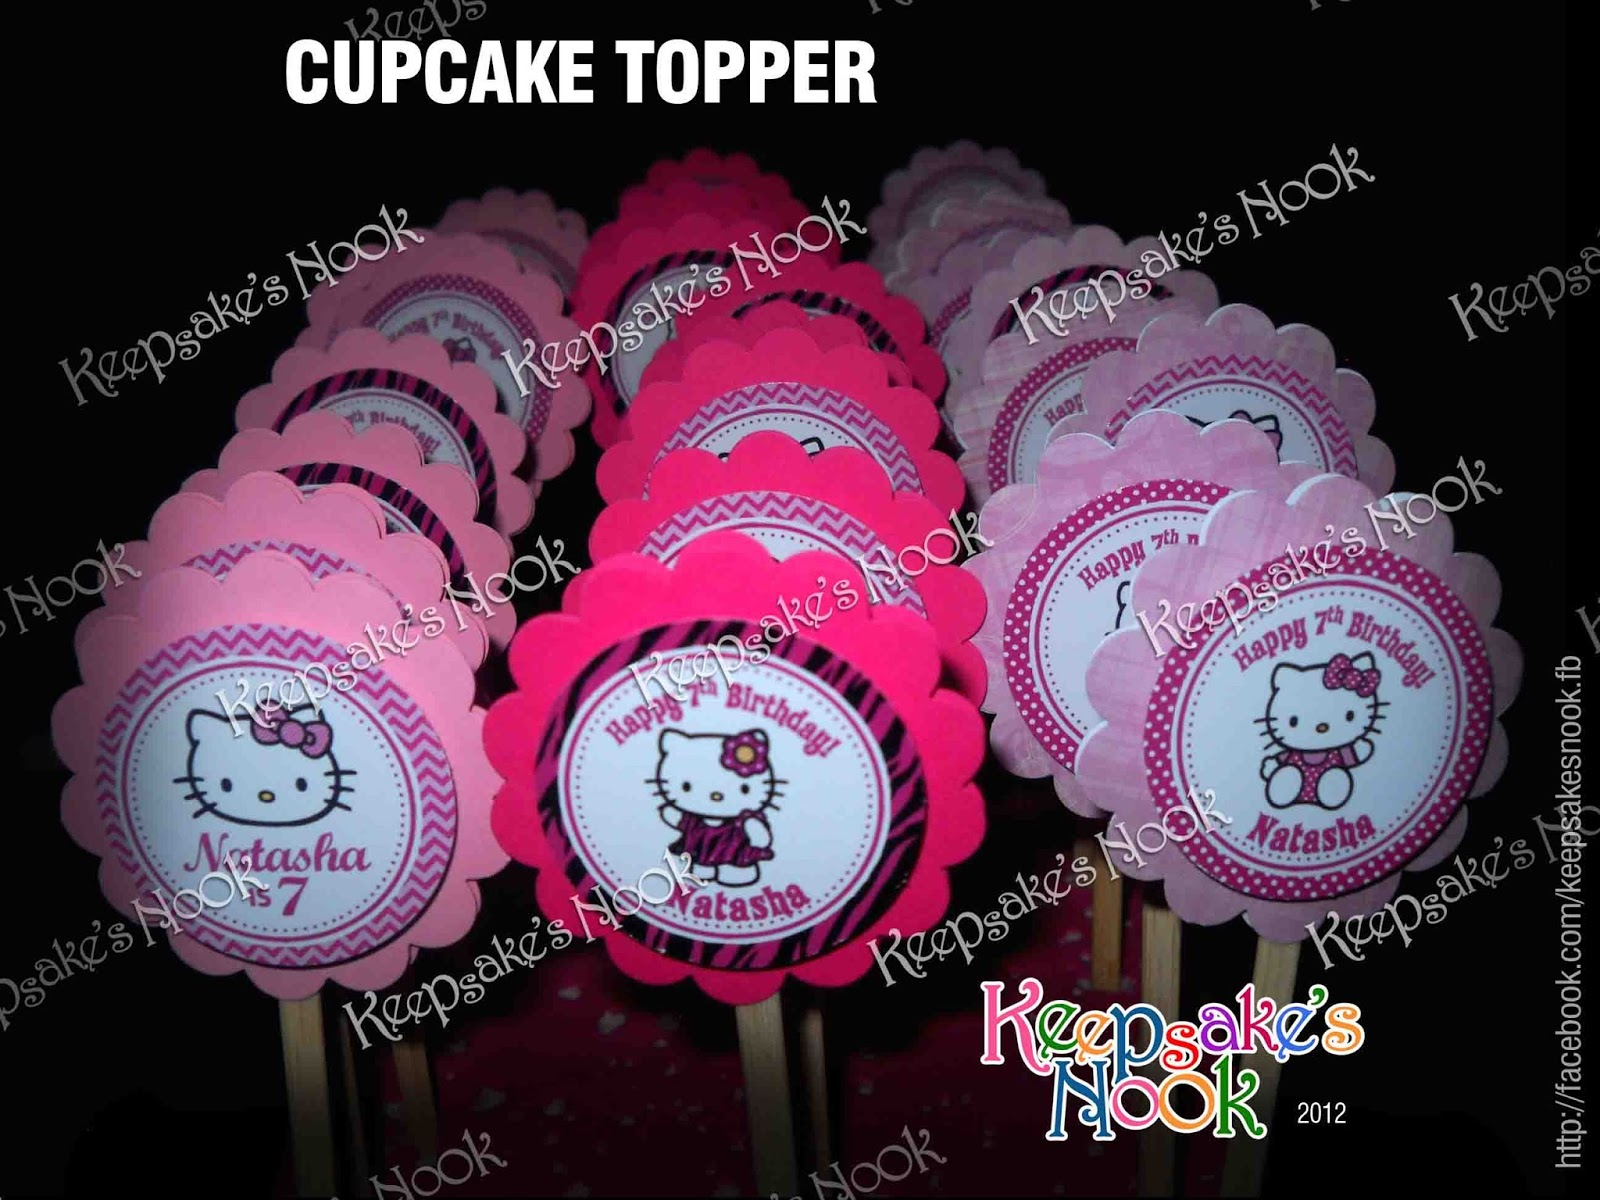 Keepsakes nook hello kitty cupcake toppers hello kitty cupcake toppers maxwellsz